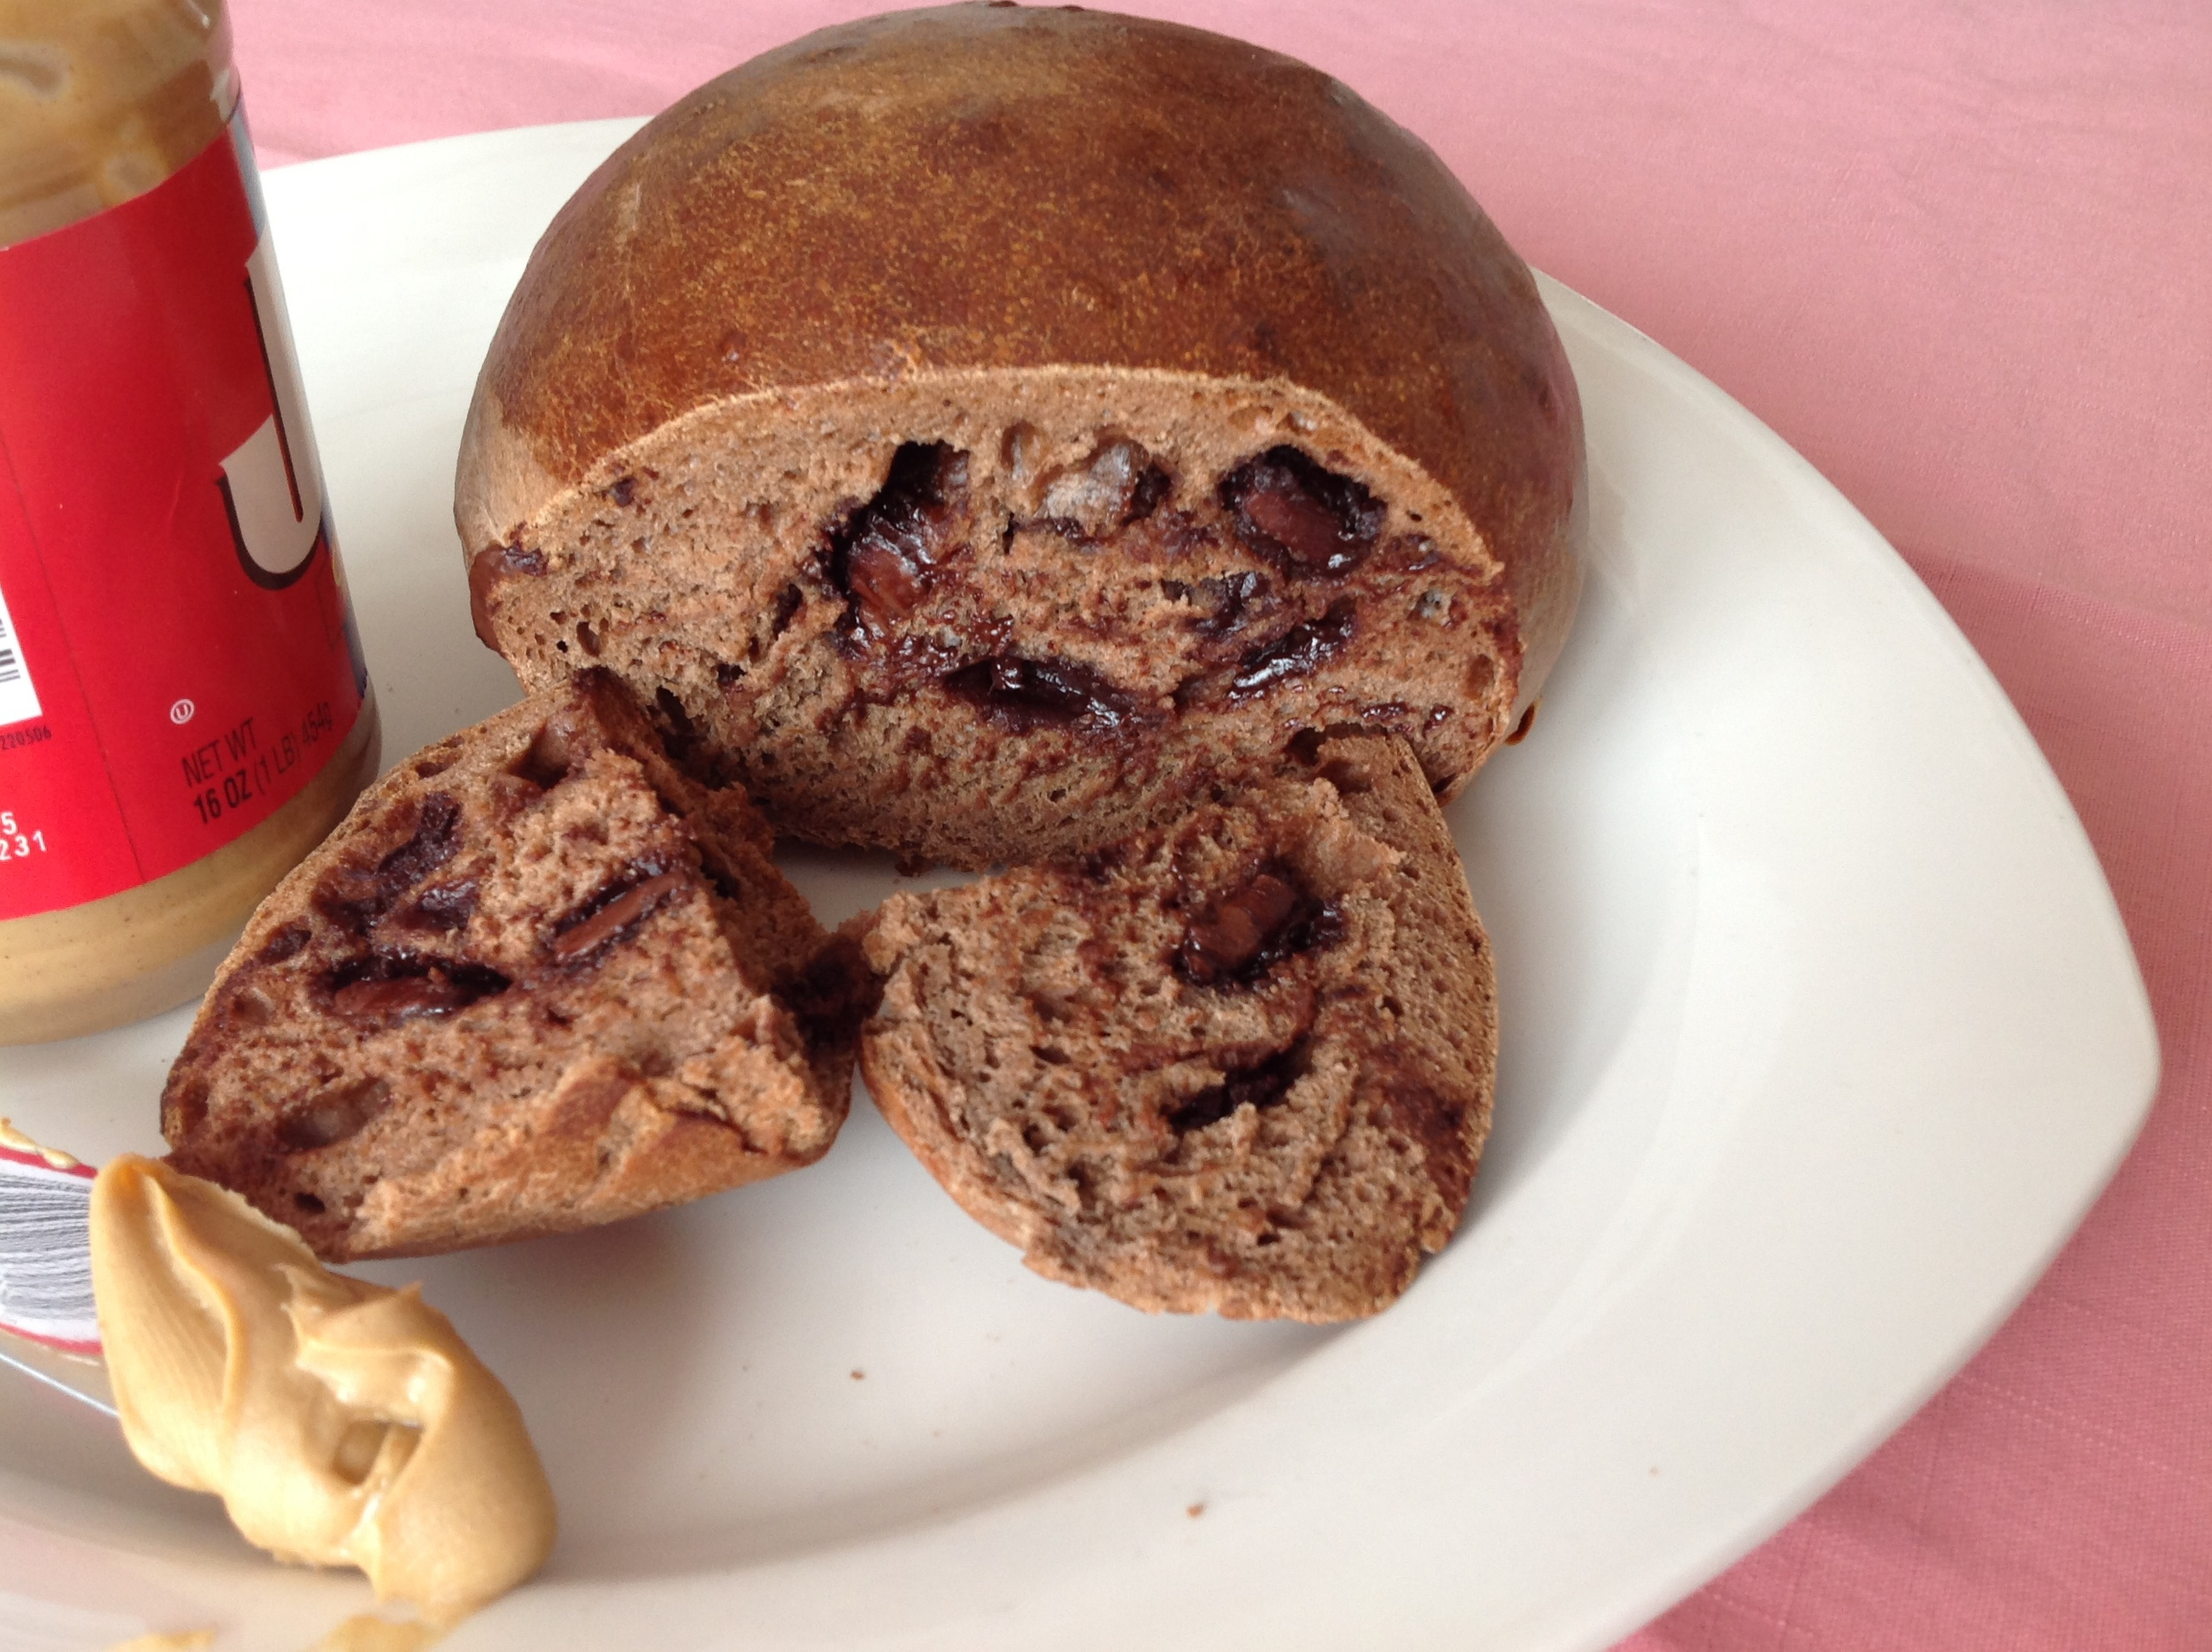 Freshly baked chocolate bread - melty chocolate chunks.  Yum!